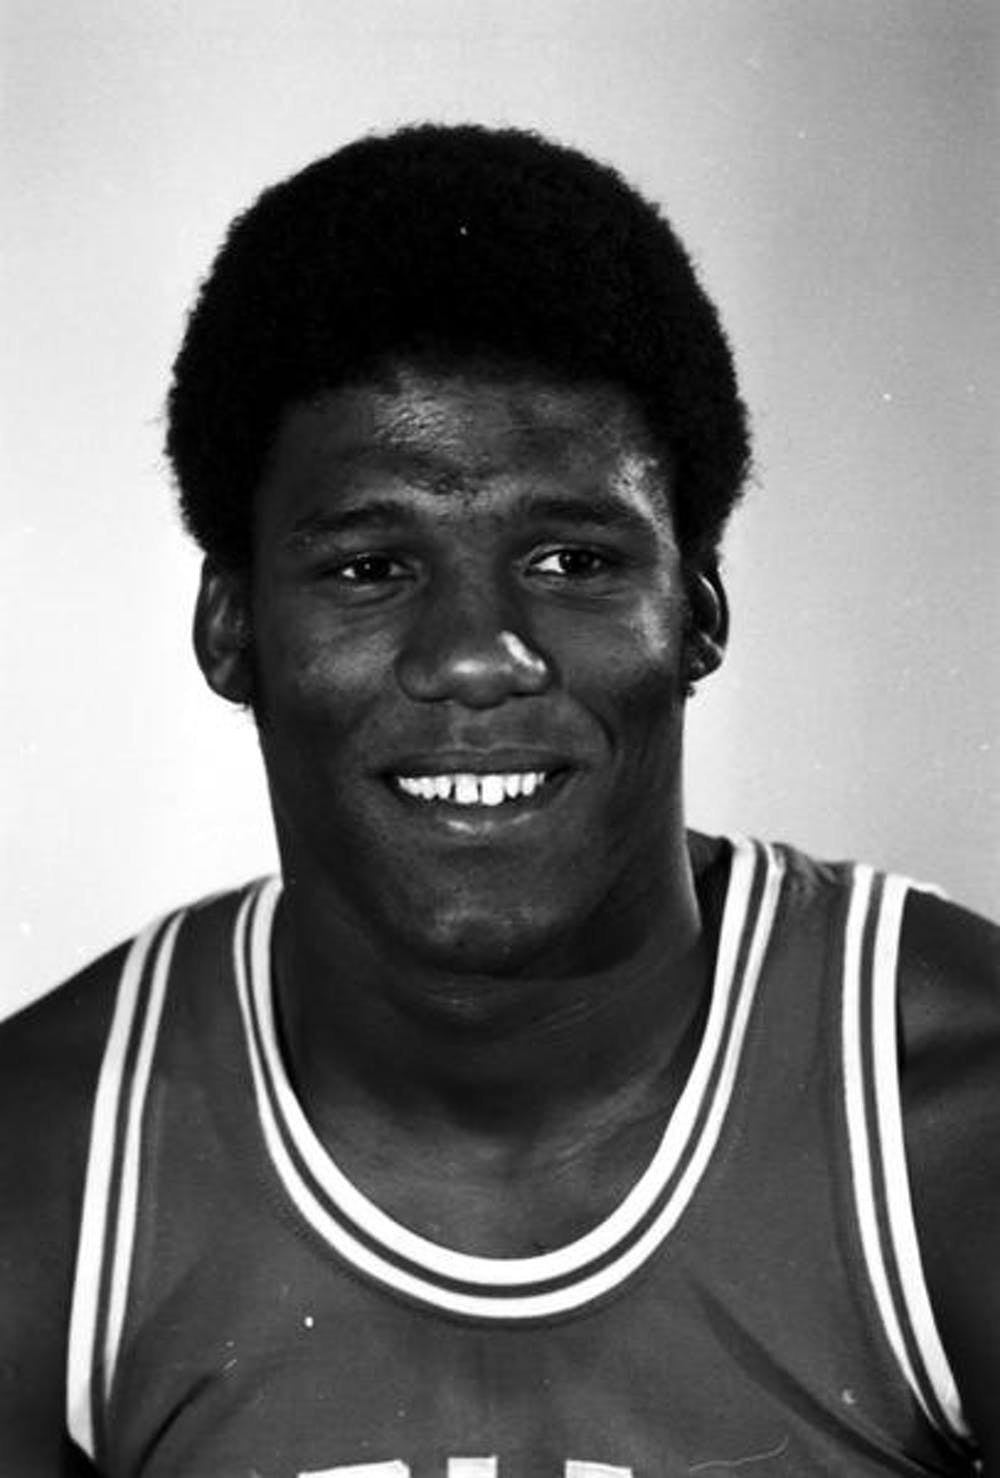 <p>Former IU men&#x27;s basketball player Wayne Radford is pictured in 1976. Radford was a member of the 1976 undefeated national championship team.</p>